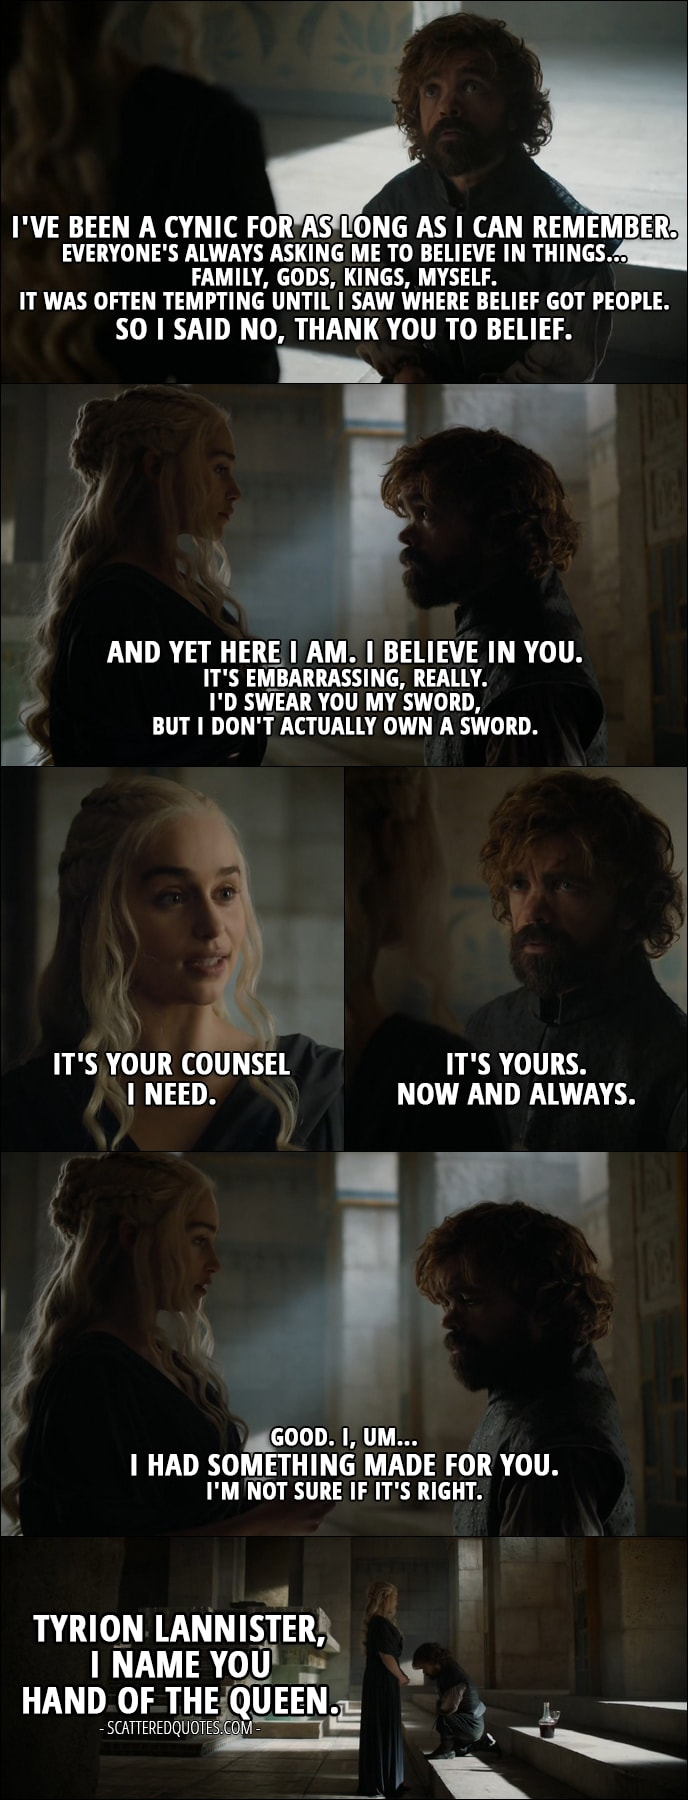 Quote from Game of Thrones 6x10 - Tyrion Lannister: I've been a cynic for as long as I can remember. Everyone's always asking me to believe in things... family, gods, kings, myself. It was often tempting until I saw where belief got people. So I said no, thank you to belief. And yet here I am. I believe in you. It's embarrassing, really. I'd swear you my sword, but I don't actually own a sword. Daenerys Targaryen: It's your counsel I need. Tyrion Lannister: It's yours. Now and always. Daenerys Targaryen: Good. I, um... I had something made for you. I'm not sure if it's right. Tyrion Lannister, I name you Hand of the Queen.